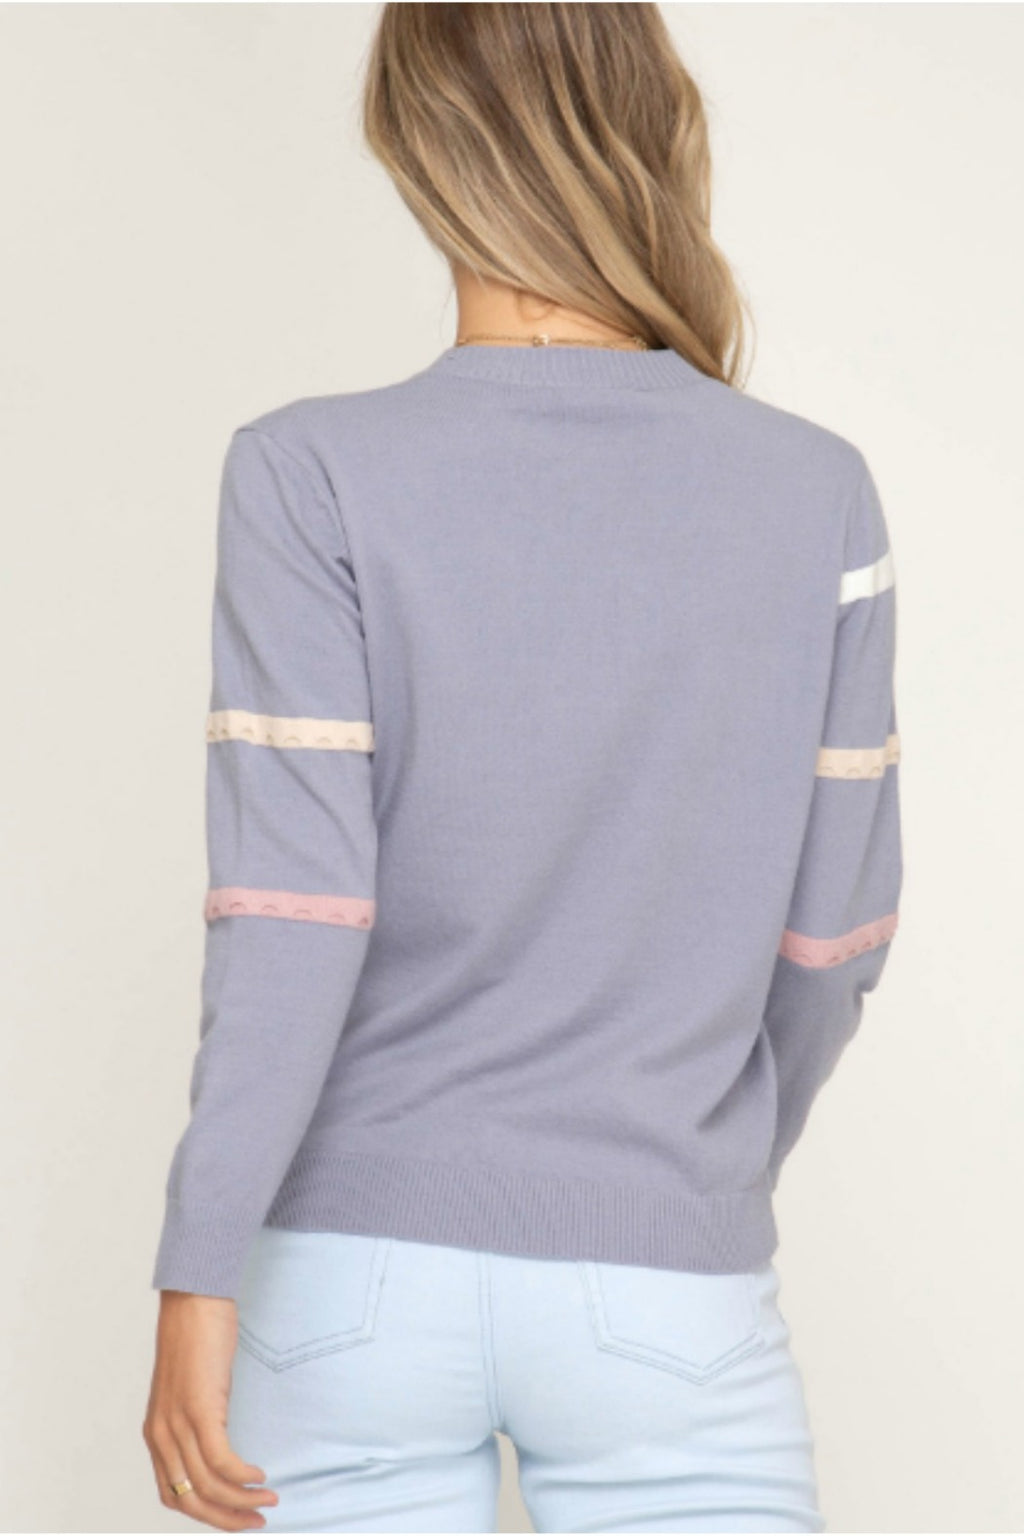 Eleanor Pullover Stripe Sweater in Blue Grey